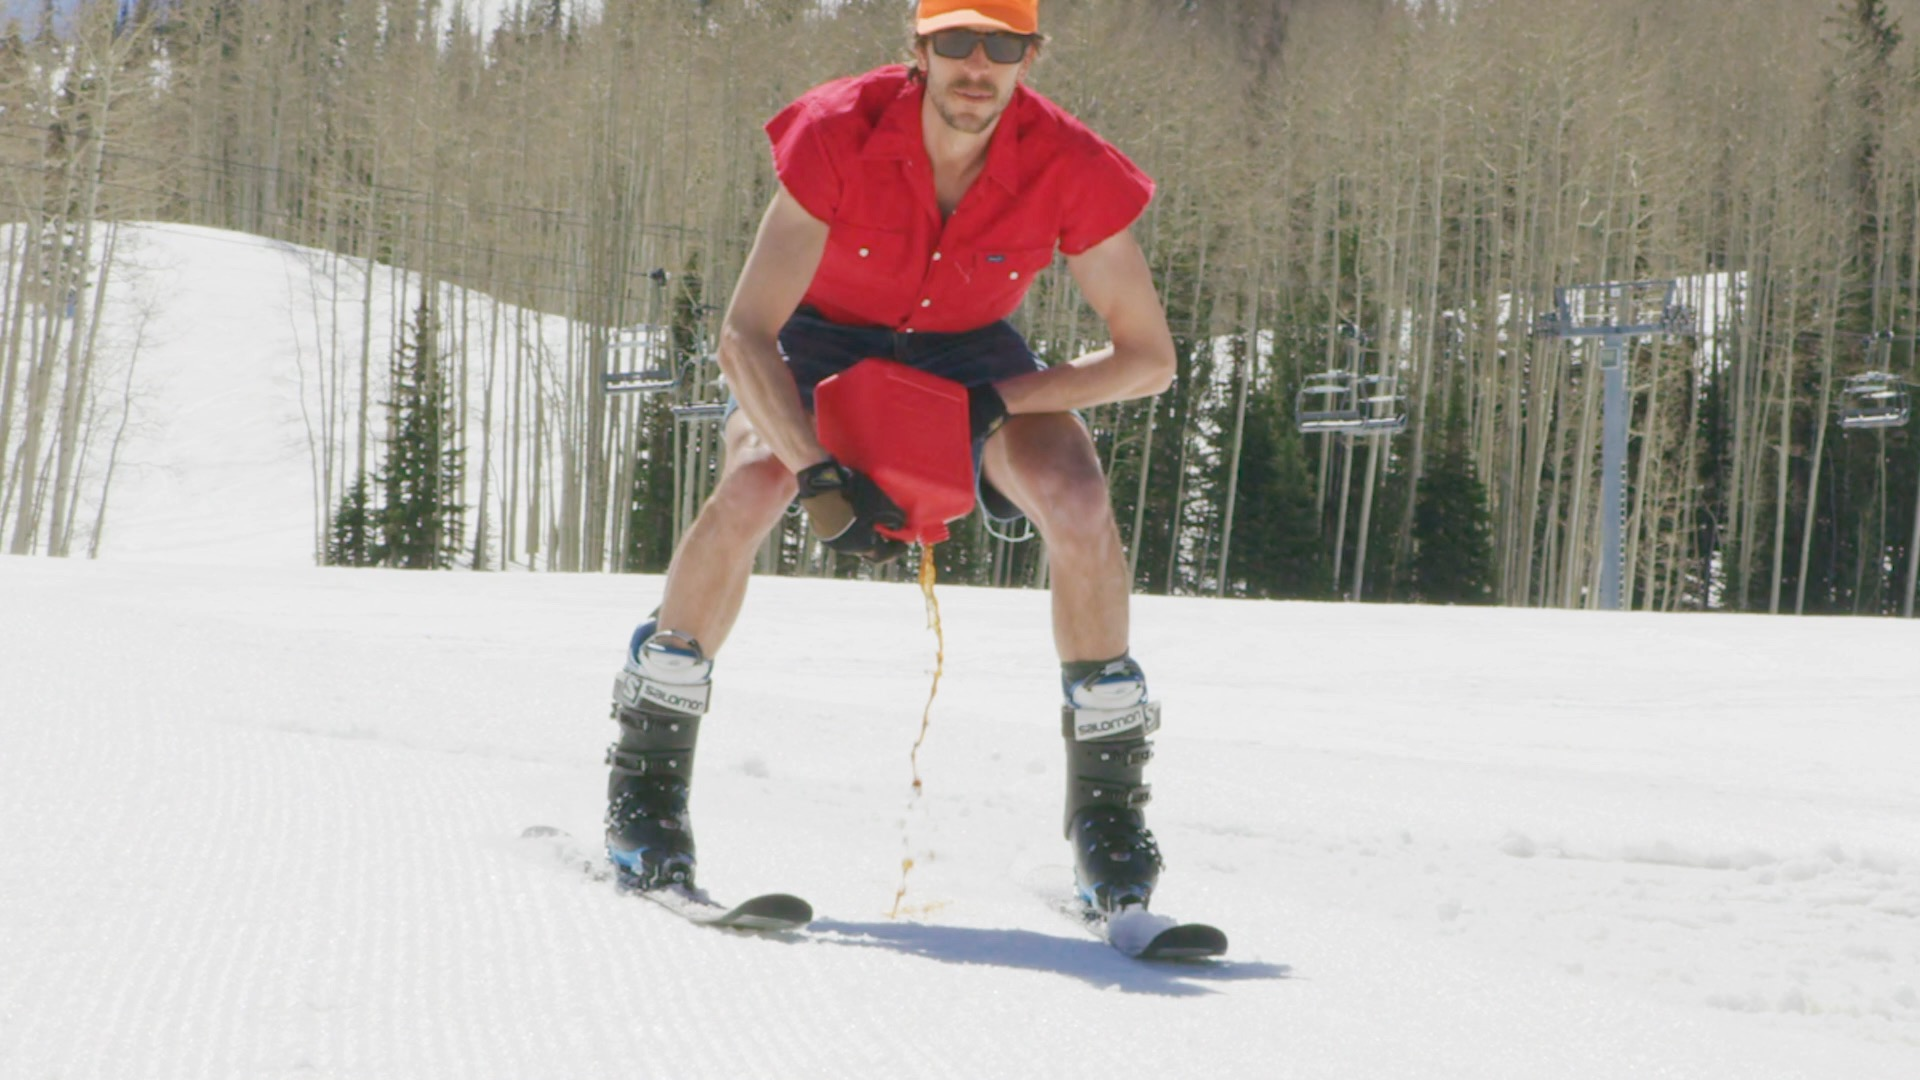 Petroleum-based ski wax is introduced directly into the snowpack